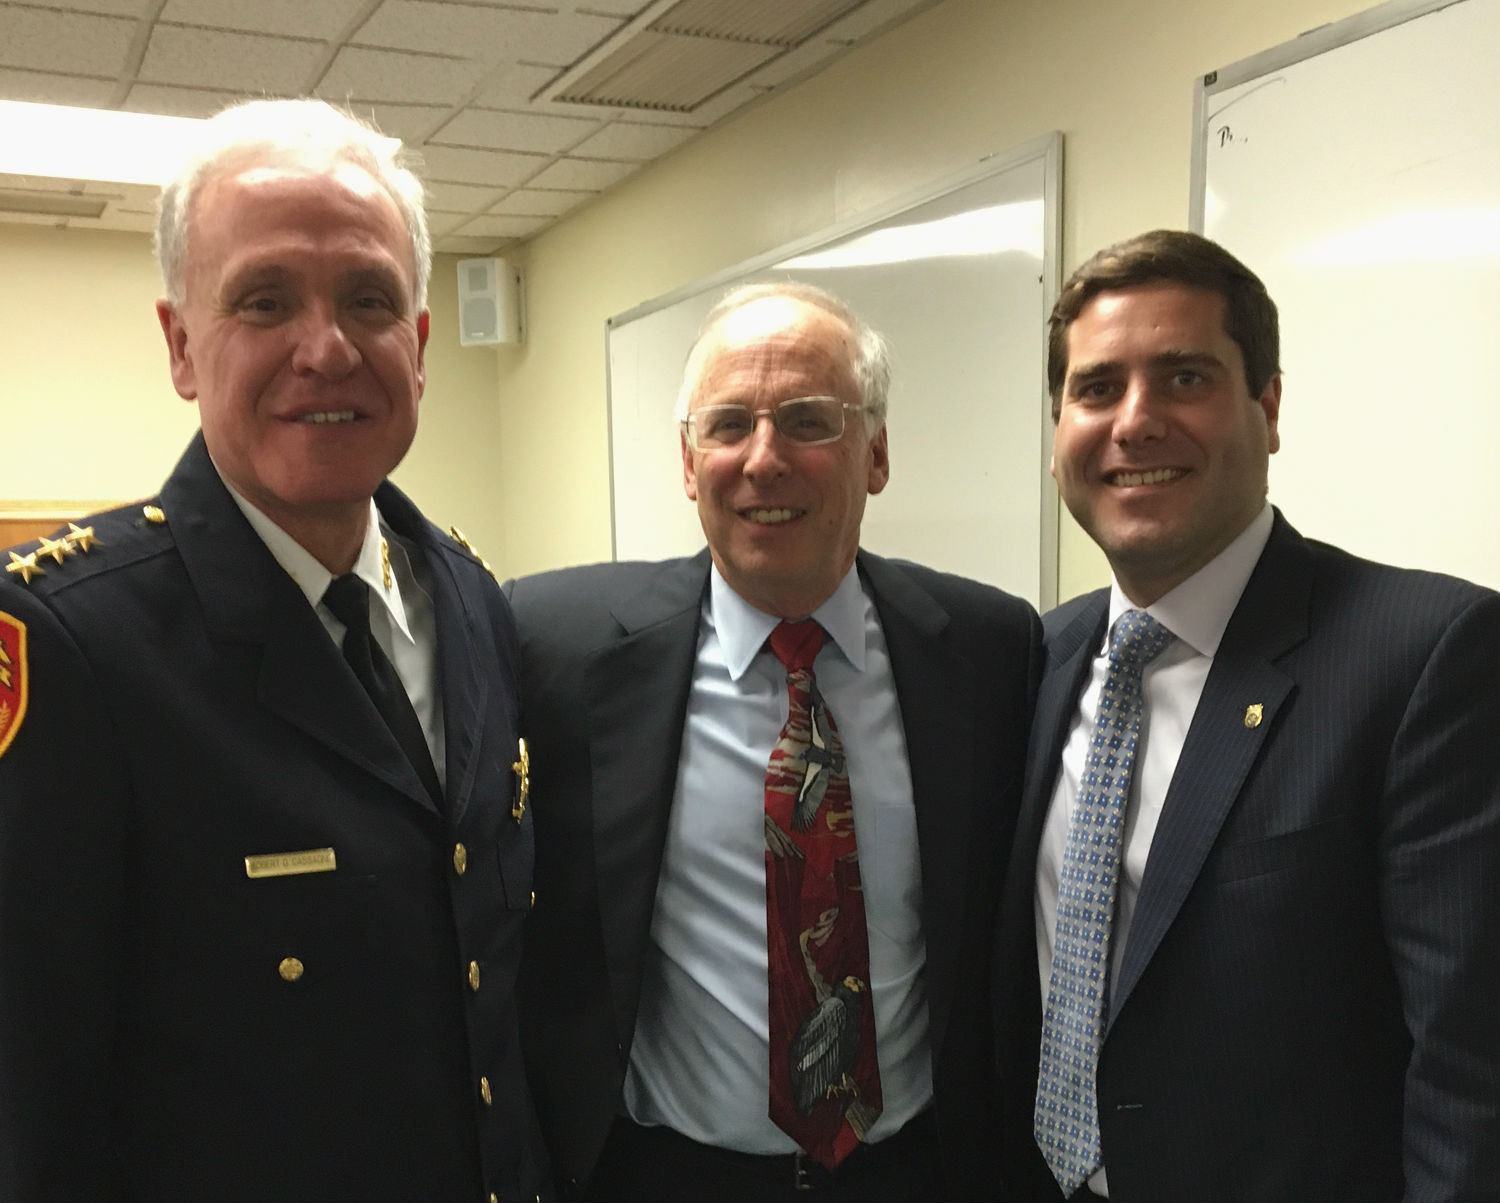 Left to right: Deputy Chief of Detectives Robert Cassagne, Professor Allen Kovesdy and Police Commissioner Timothy Sini